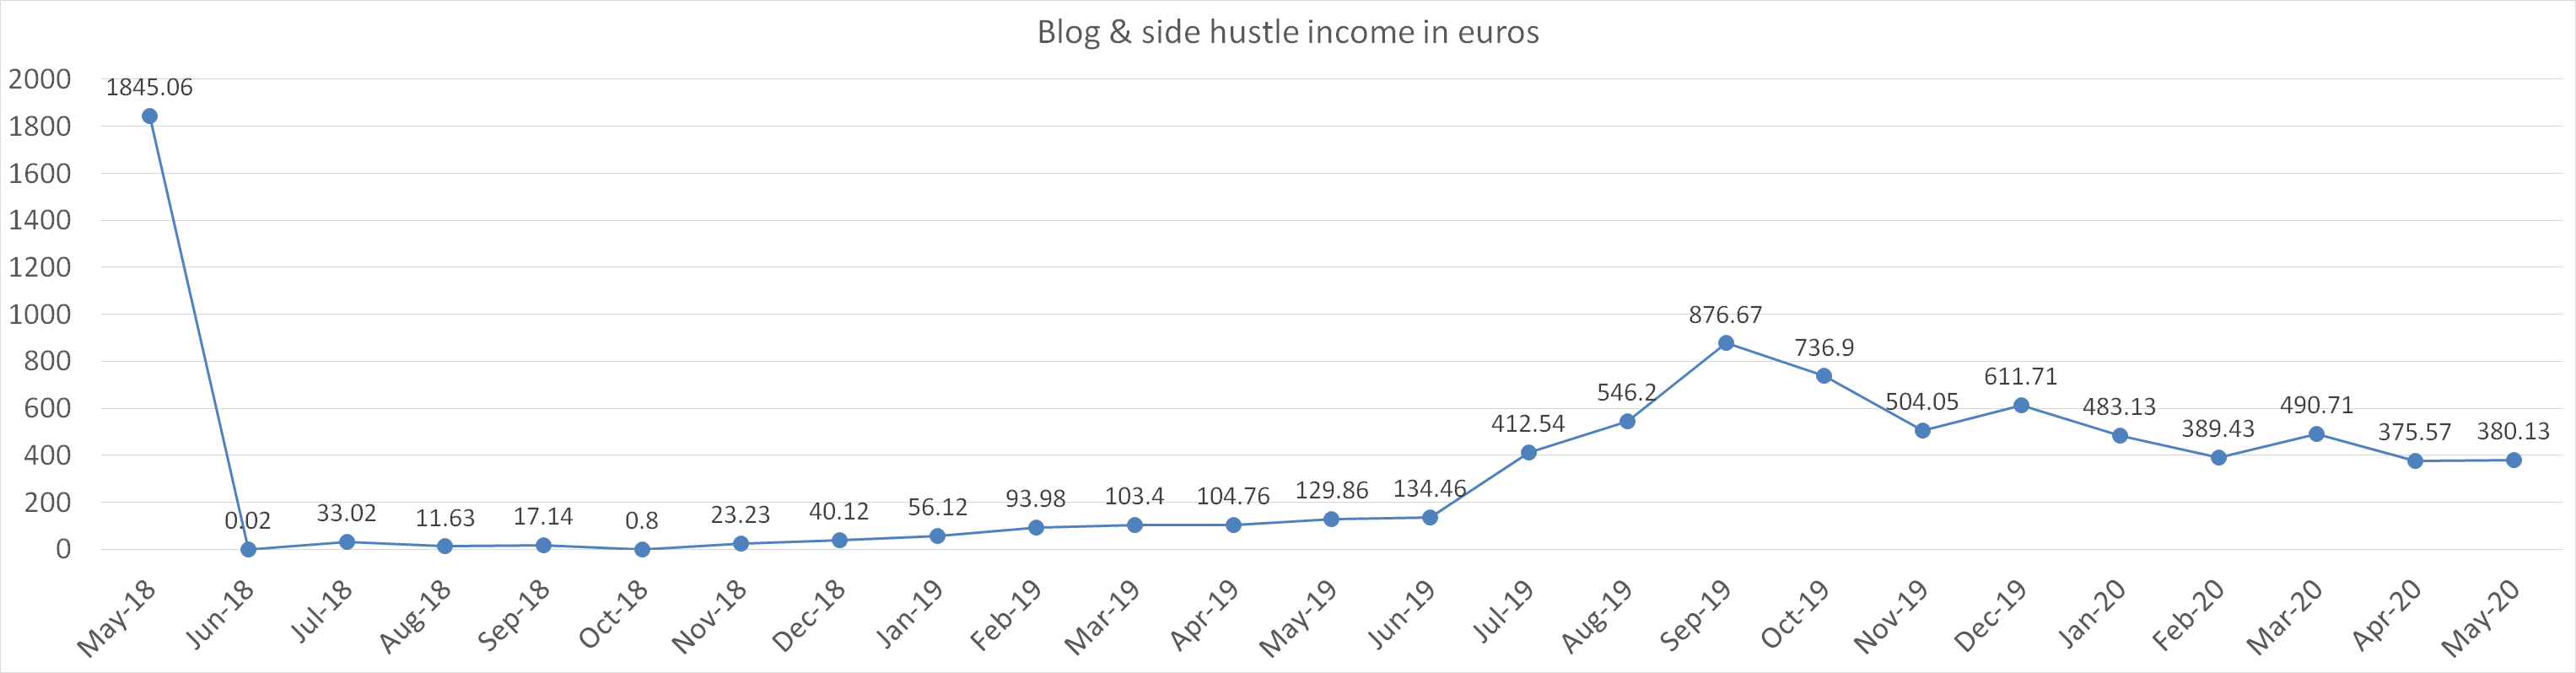 Blog and side hustle income in euros may 2020